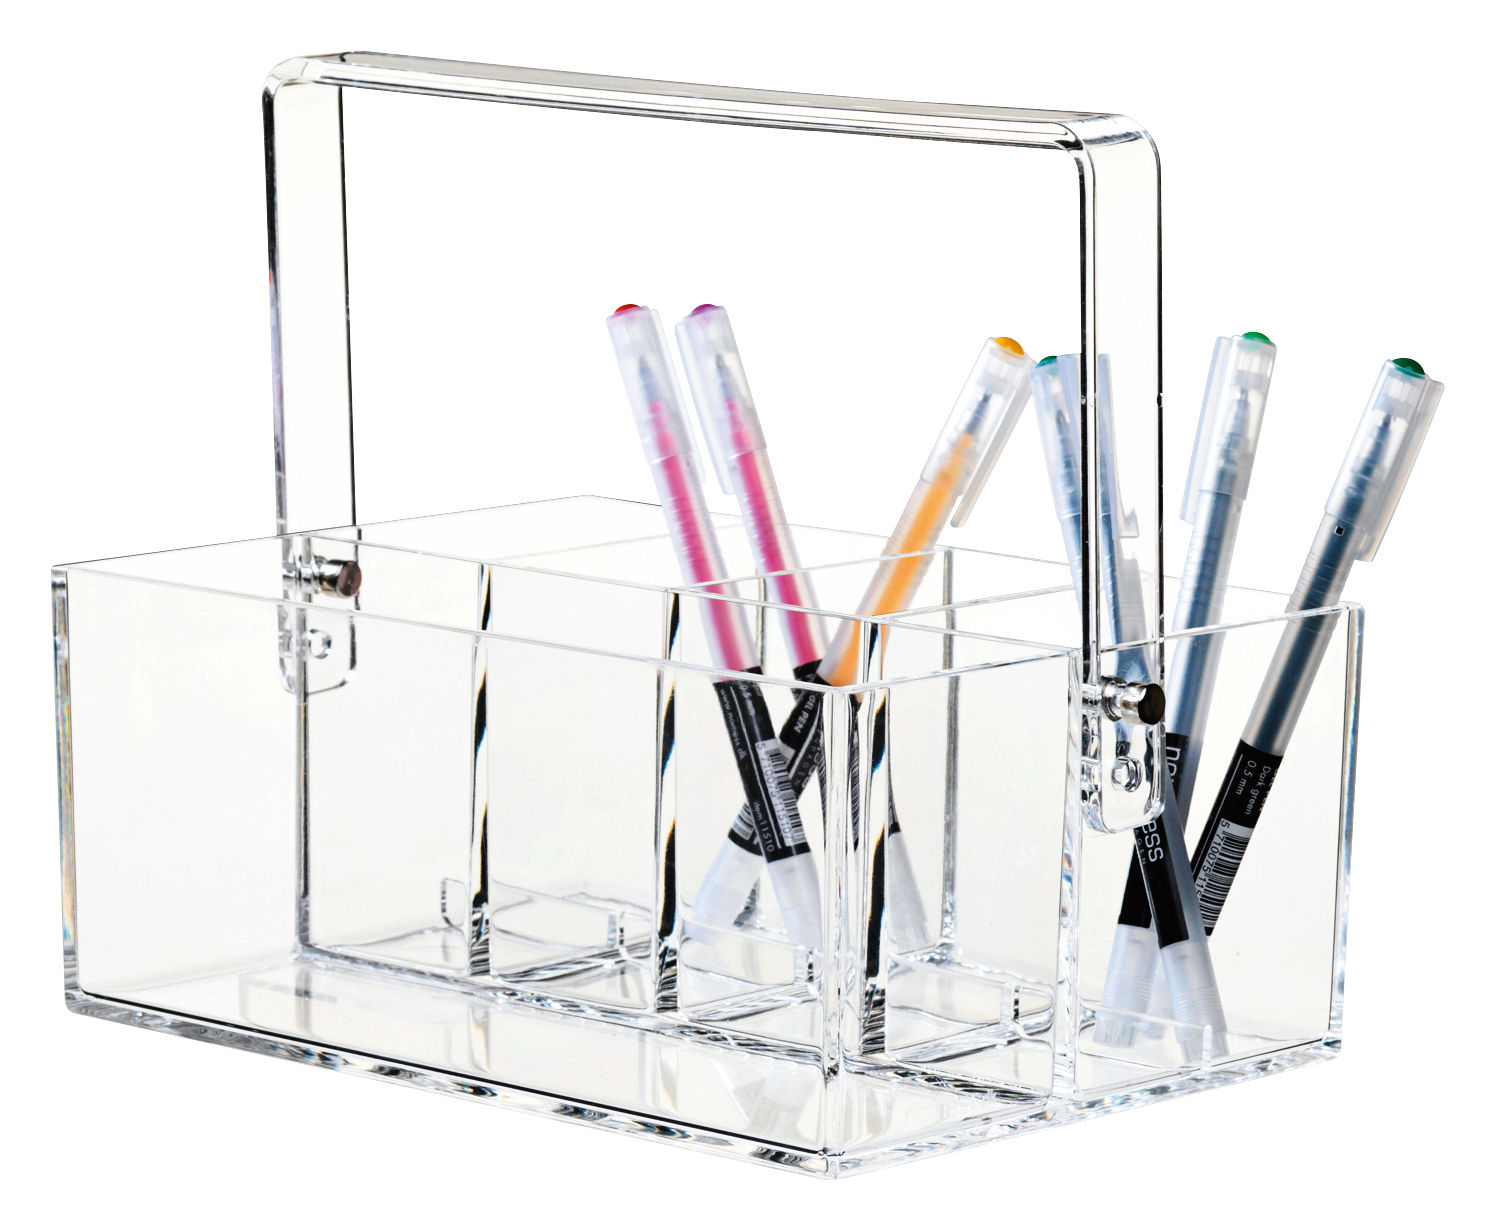 clear schminkbox nomess schreibtisch organizer. Black Bedroom Furniture Sets. Home Design Ideas